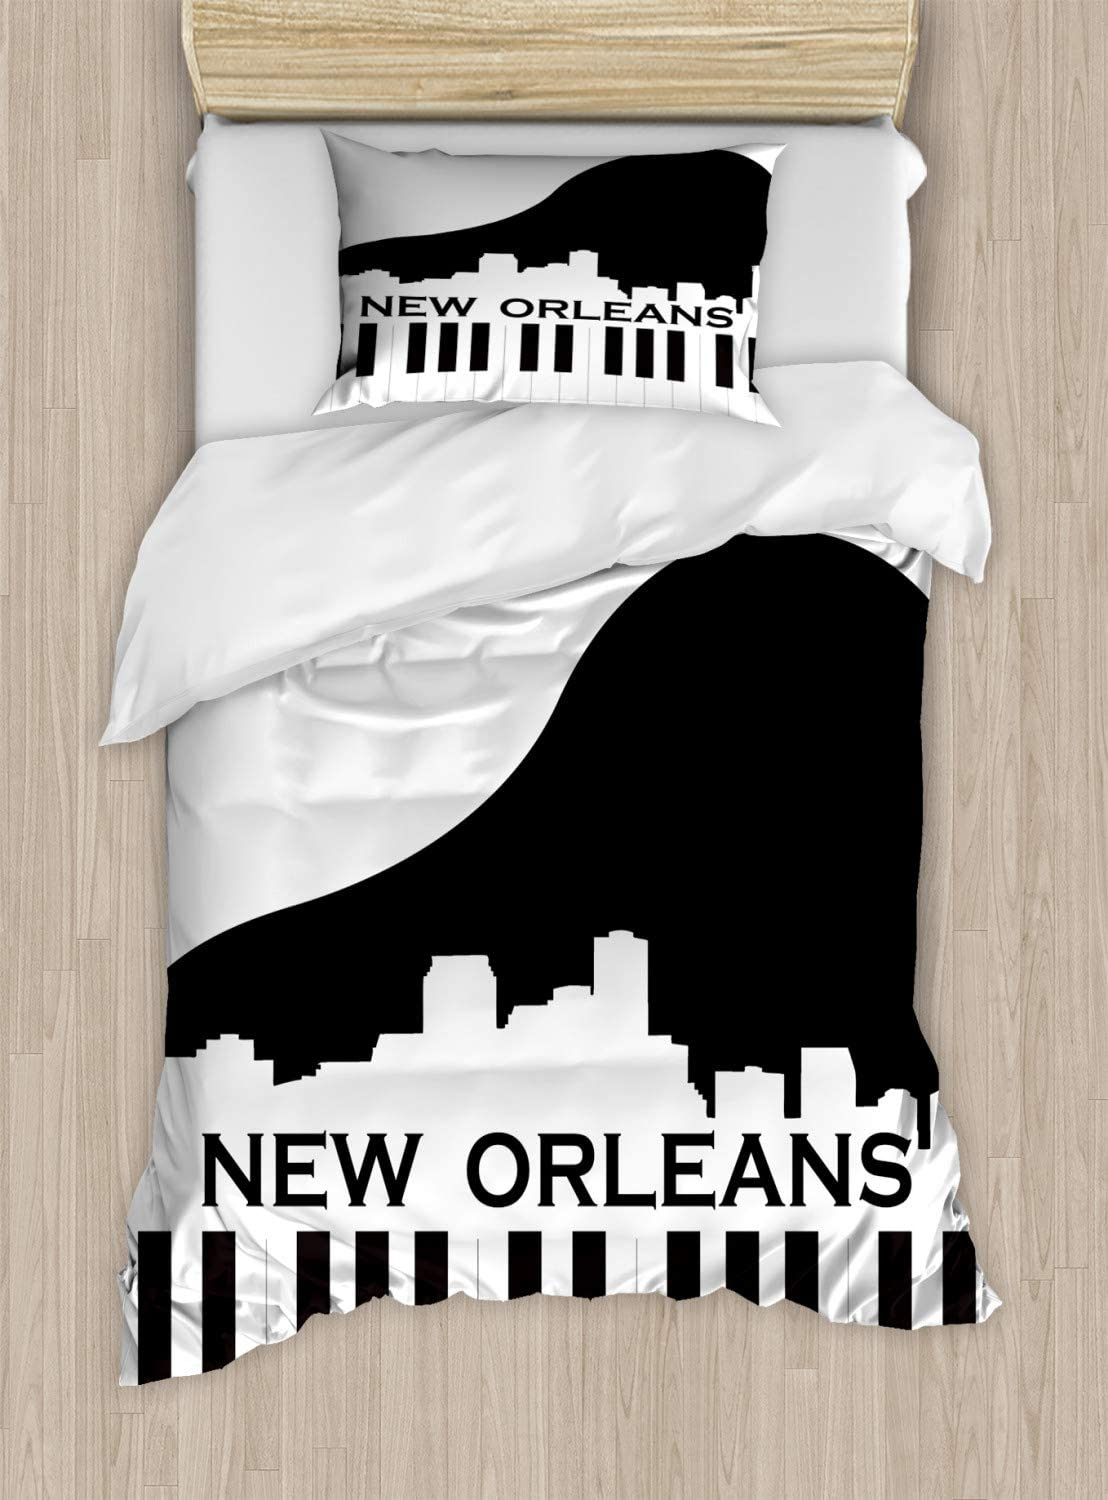 Ambesonne New Orleans Duvet Cover Set, City Silhouette on a Piano Jazz Capital of The United States of America, Decorative 2 Piece Bedding Set with 1 Pillow Sham, Twin Size, Black